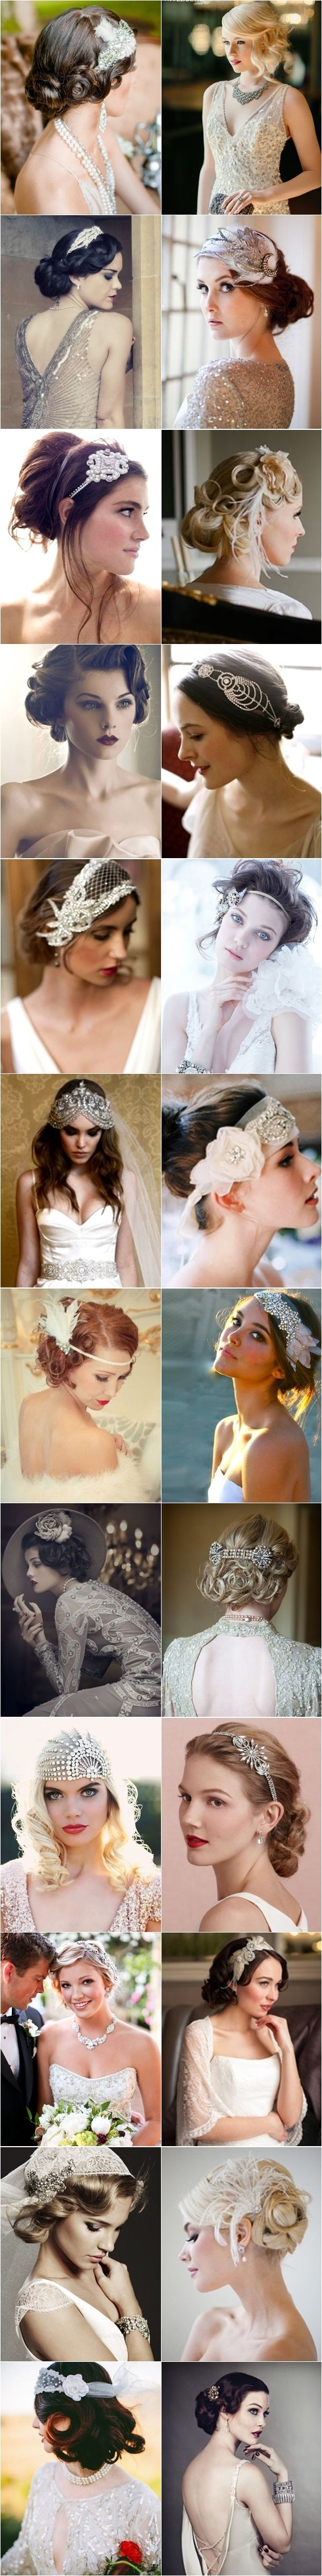 """Wedding Philippines - 1920s Gatsby Glam Inspired Hairstyles"" Tons of ideas for your hair for your future Gatsby-themed wedding!@kaymac2012"